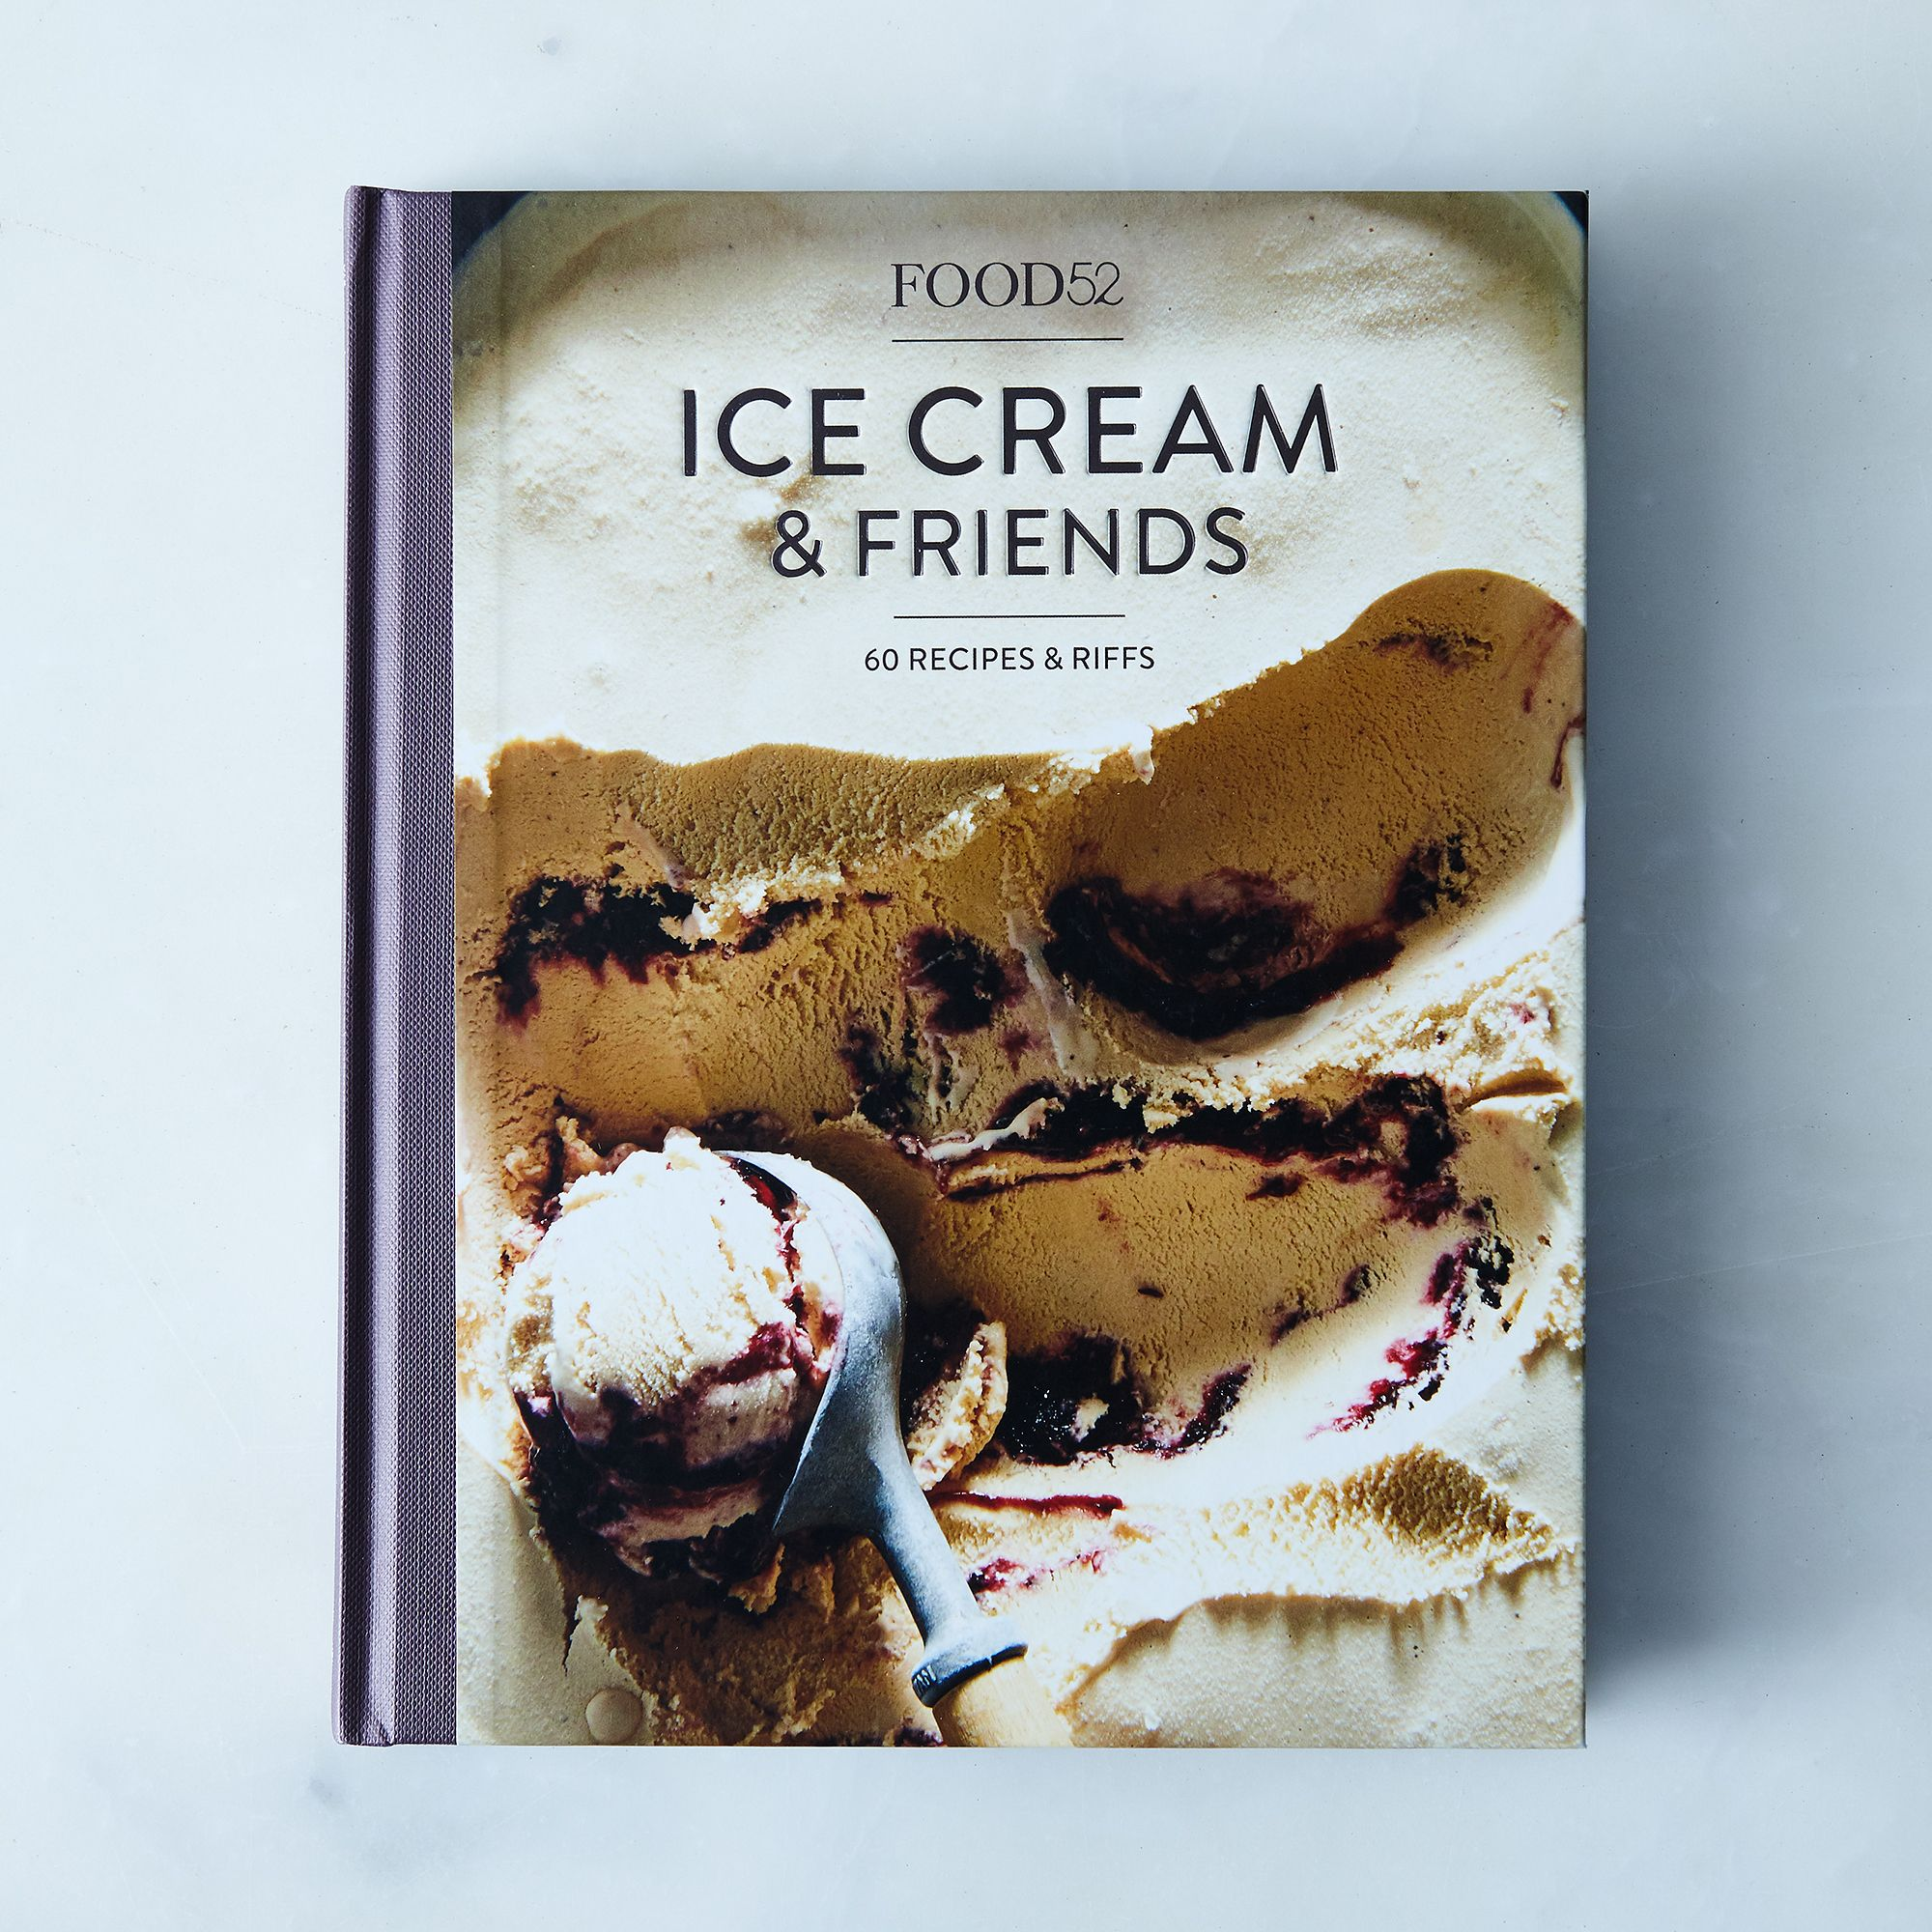 F058c55d a076 40c7 b4aa 54f4c97ba107  2017 0217 ten speed press food52 ice cream and friends cookbook silo rocky luten 003 2